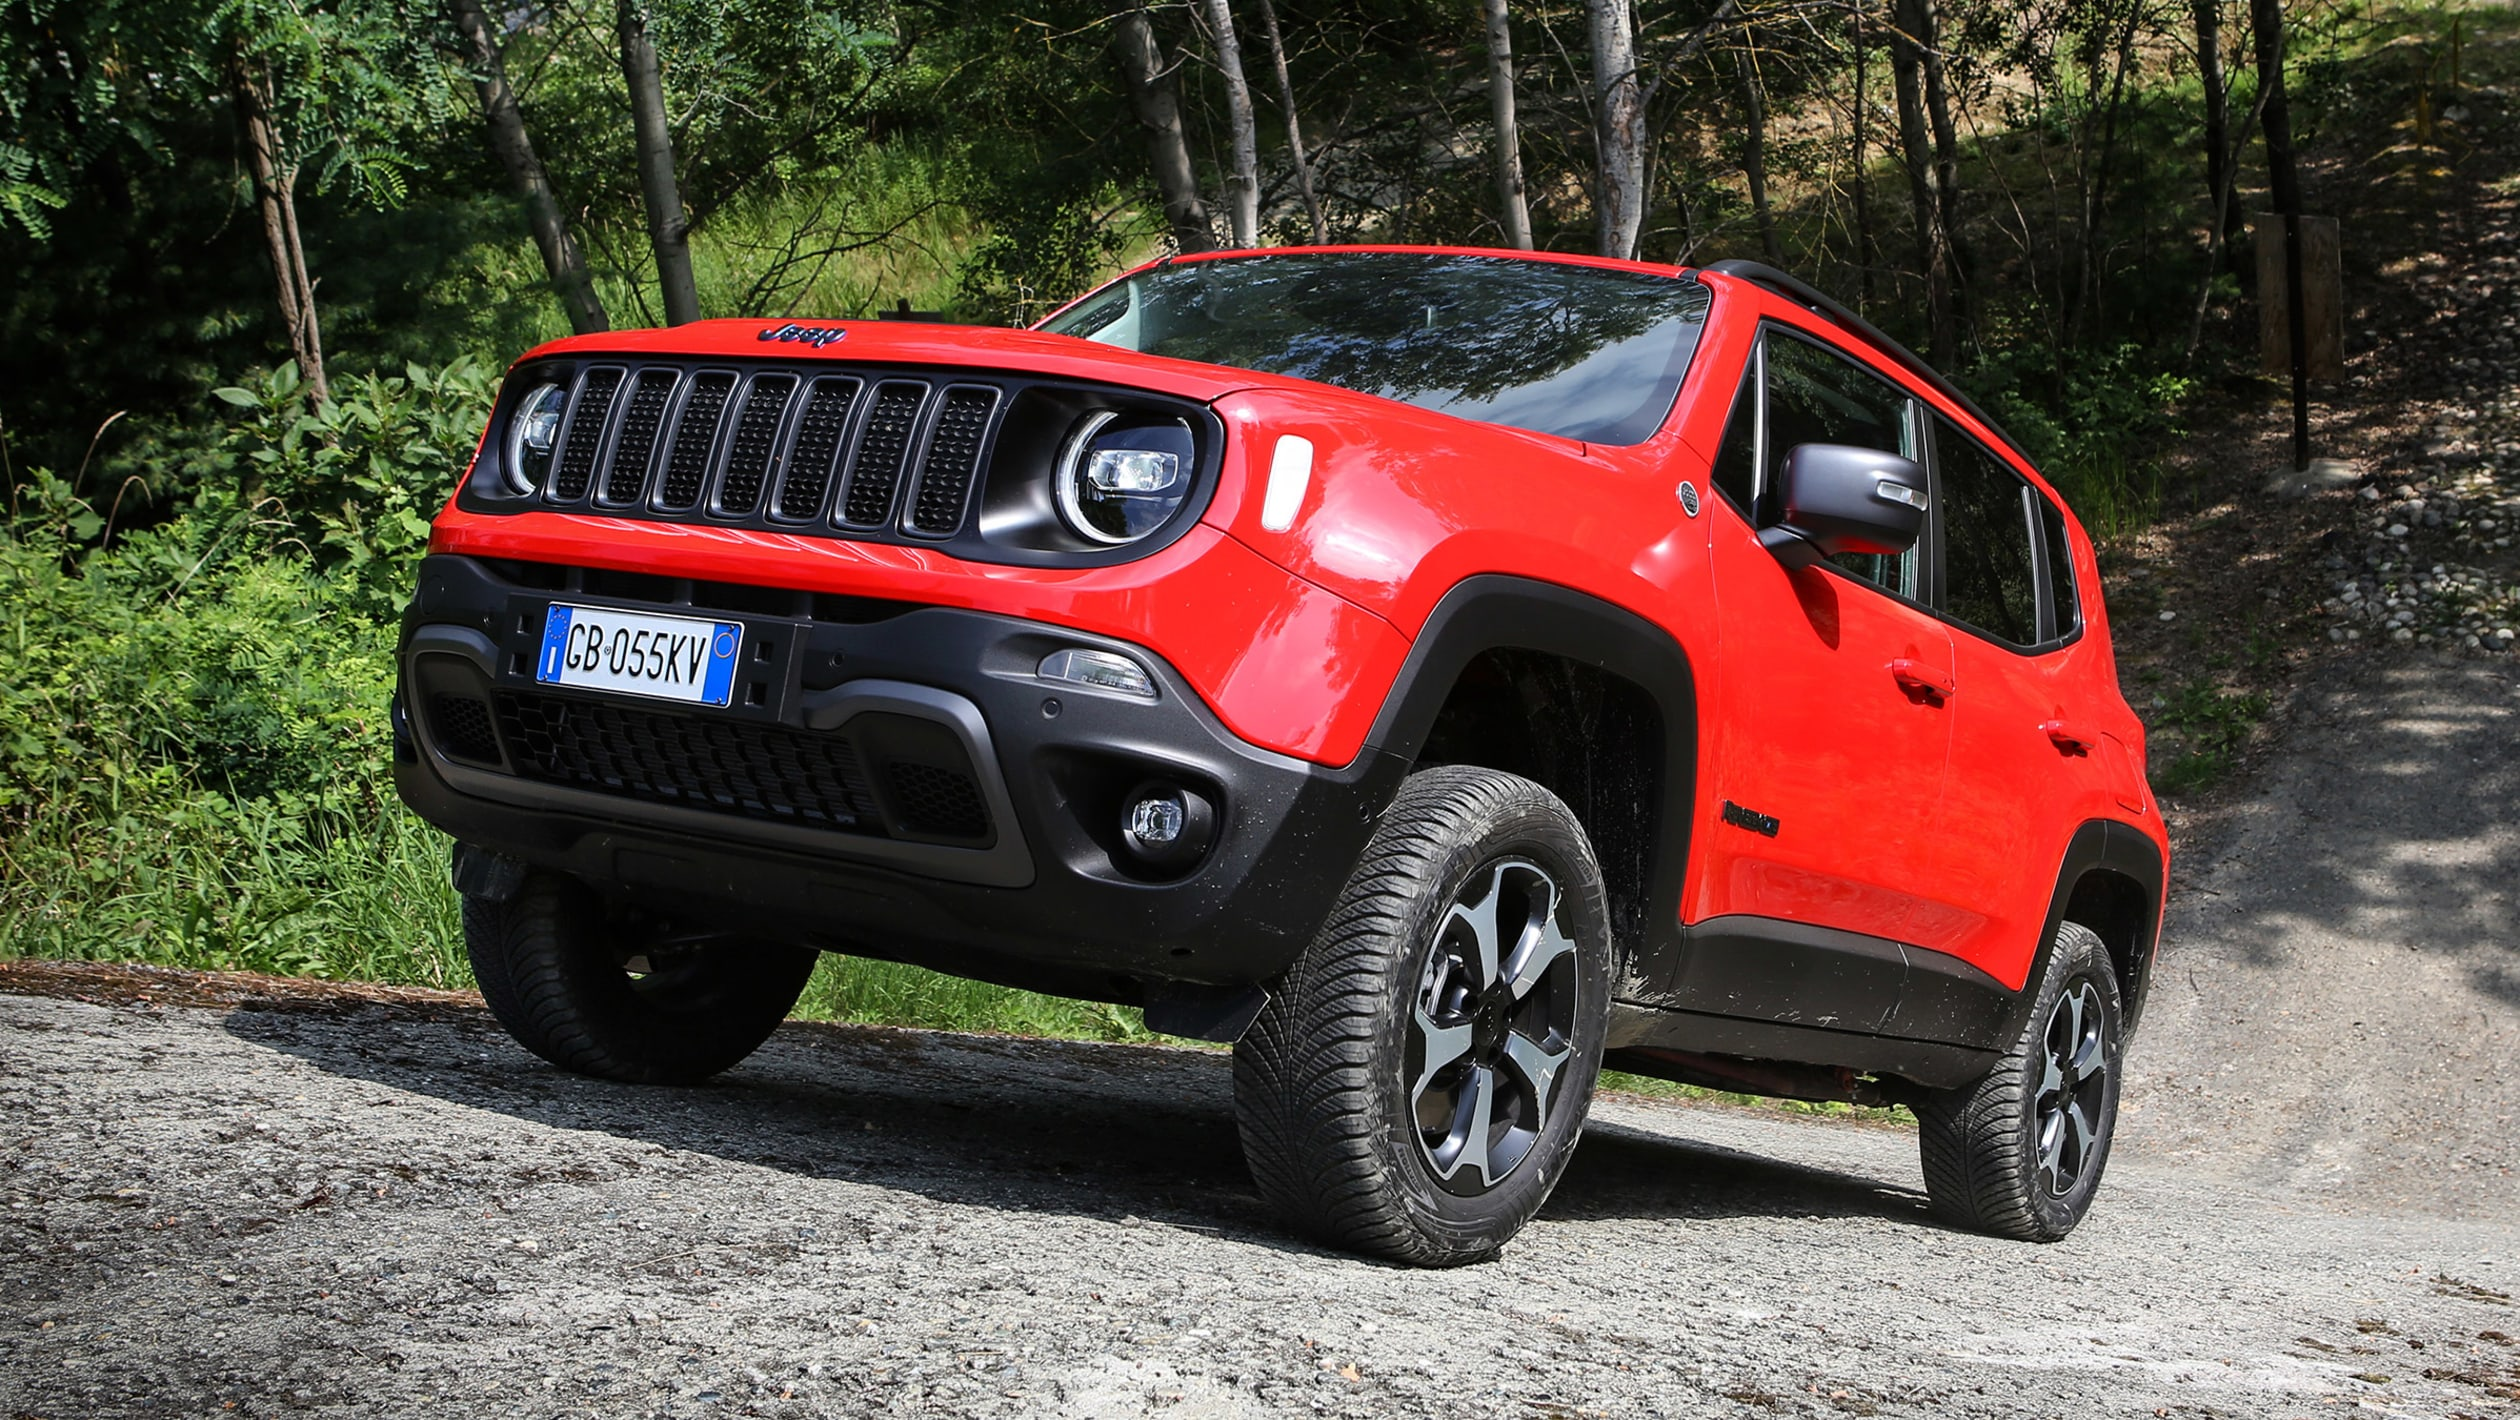 2014 - [Jeep] Renegade - Page 15 Jeep%20Renegade%204xe%202020-2